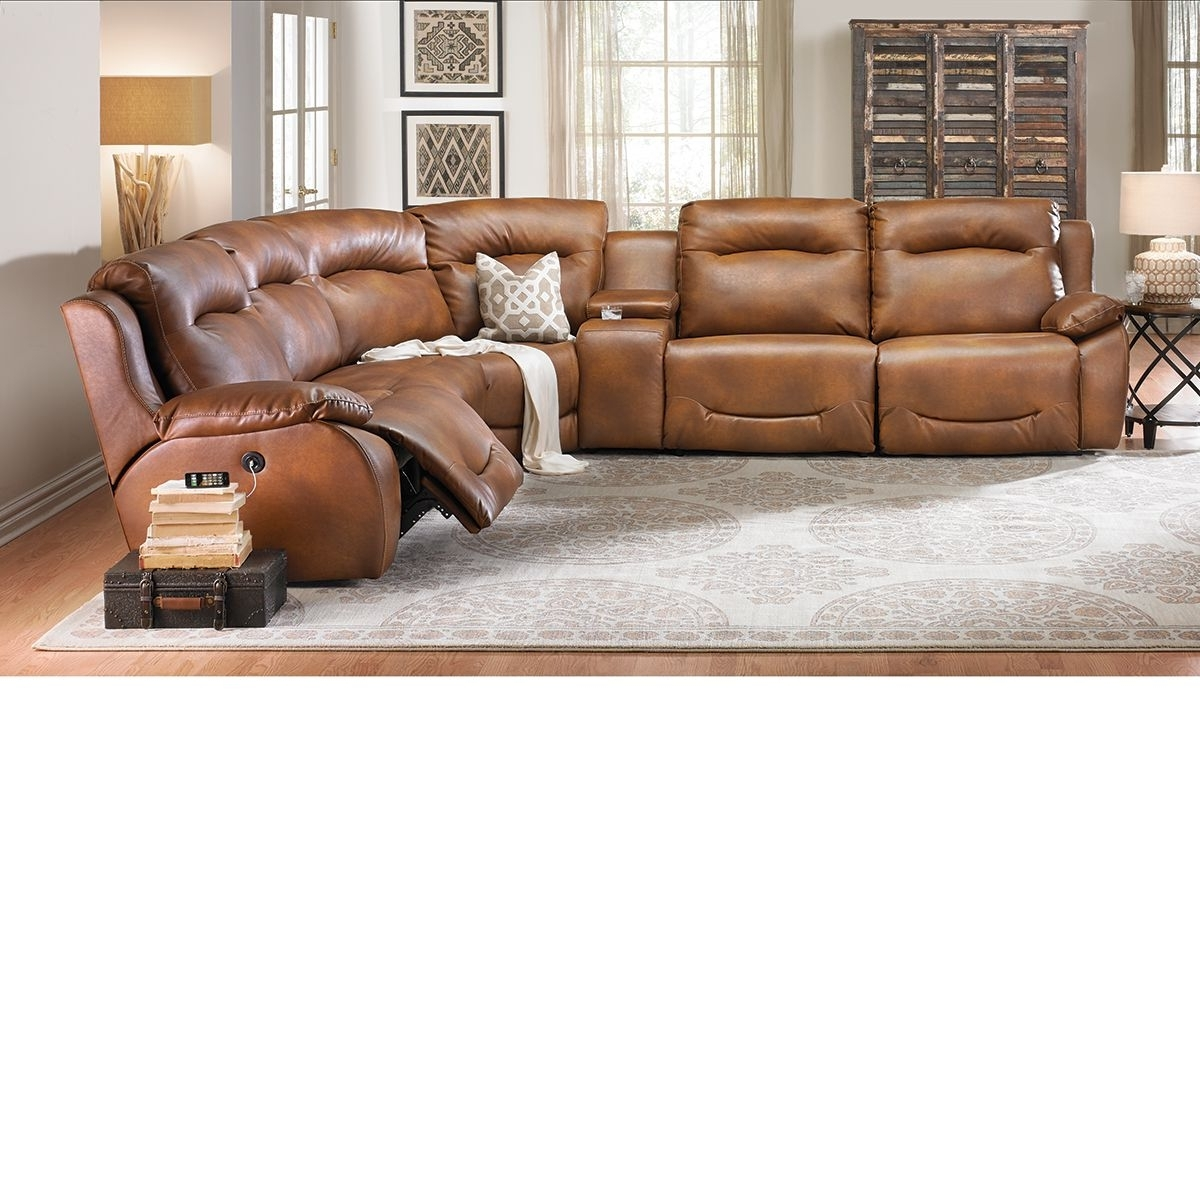 The Dump Furniture Outlet – Closeout: 6 Piece Power Plus Sectional For Most Popular Closeout Sofas (View 9 of 15)